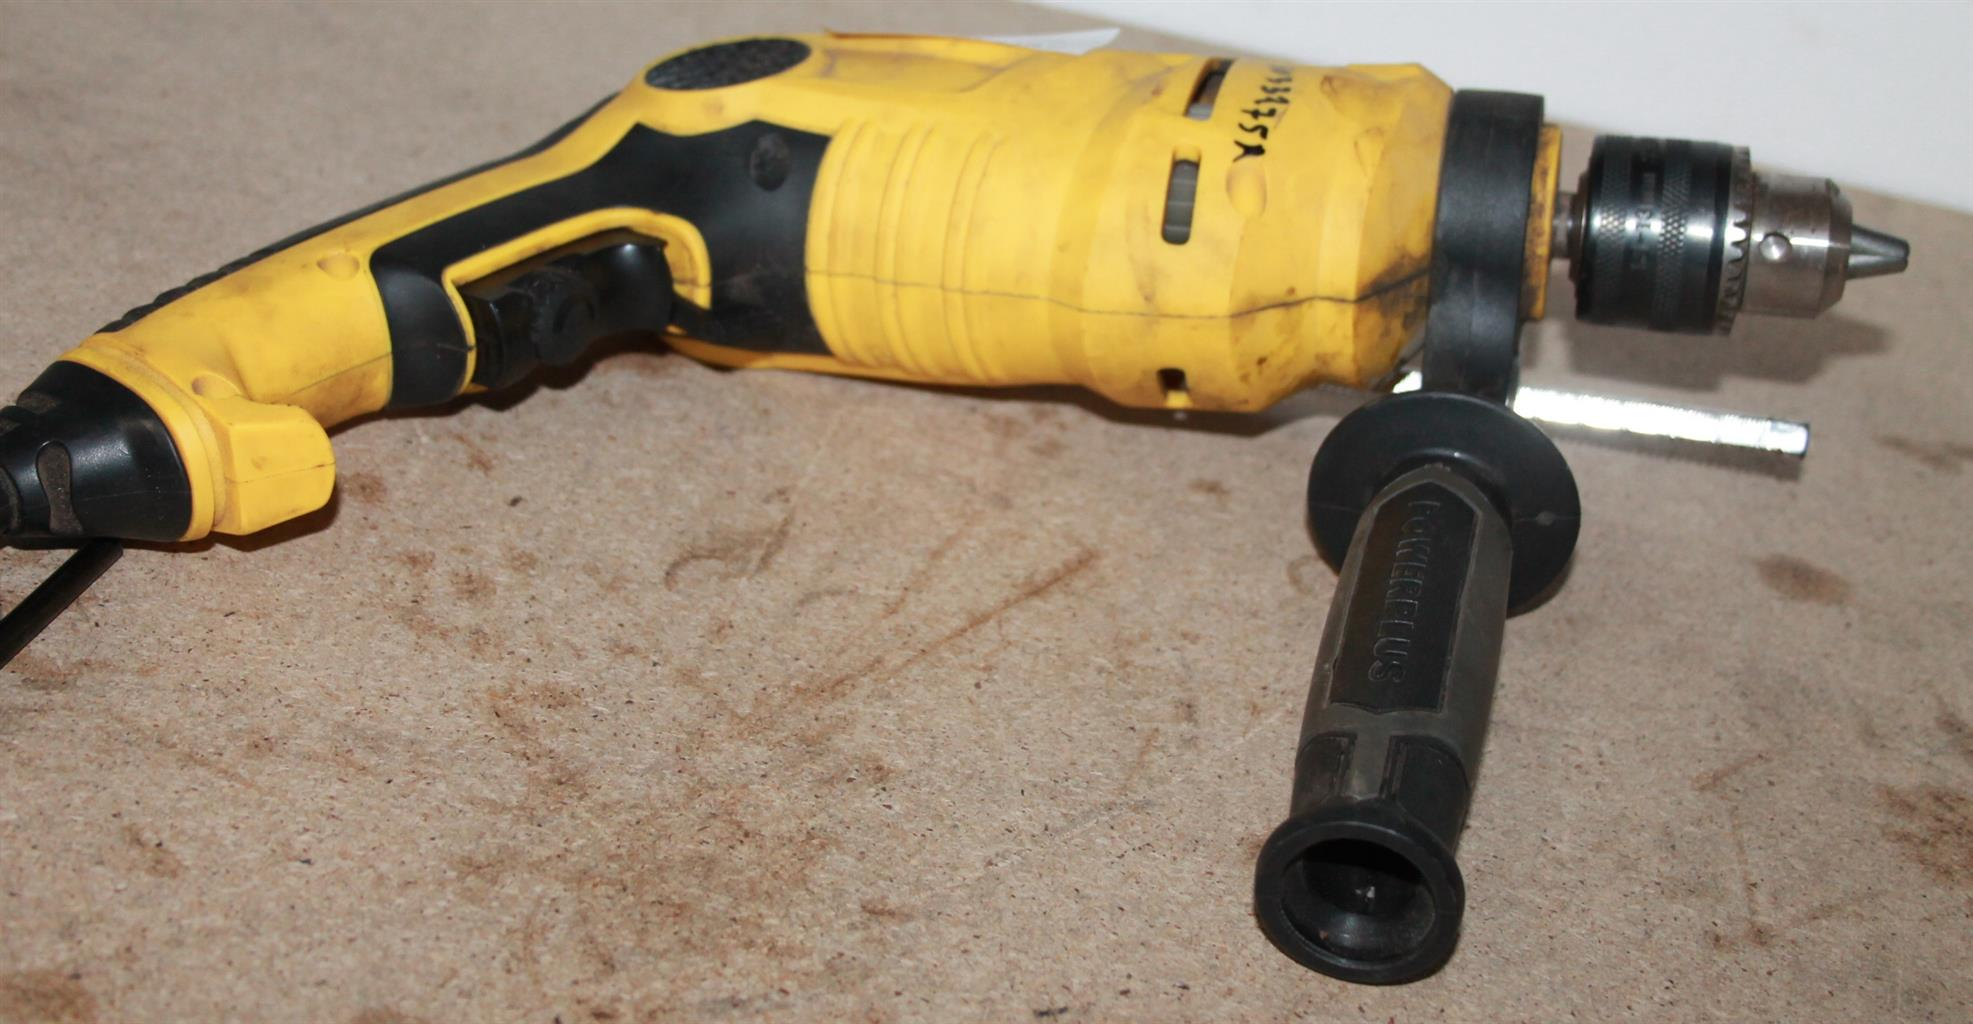 Power plus drill S033275A